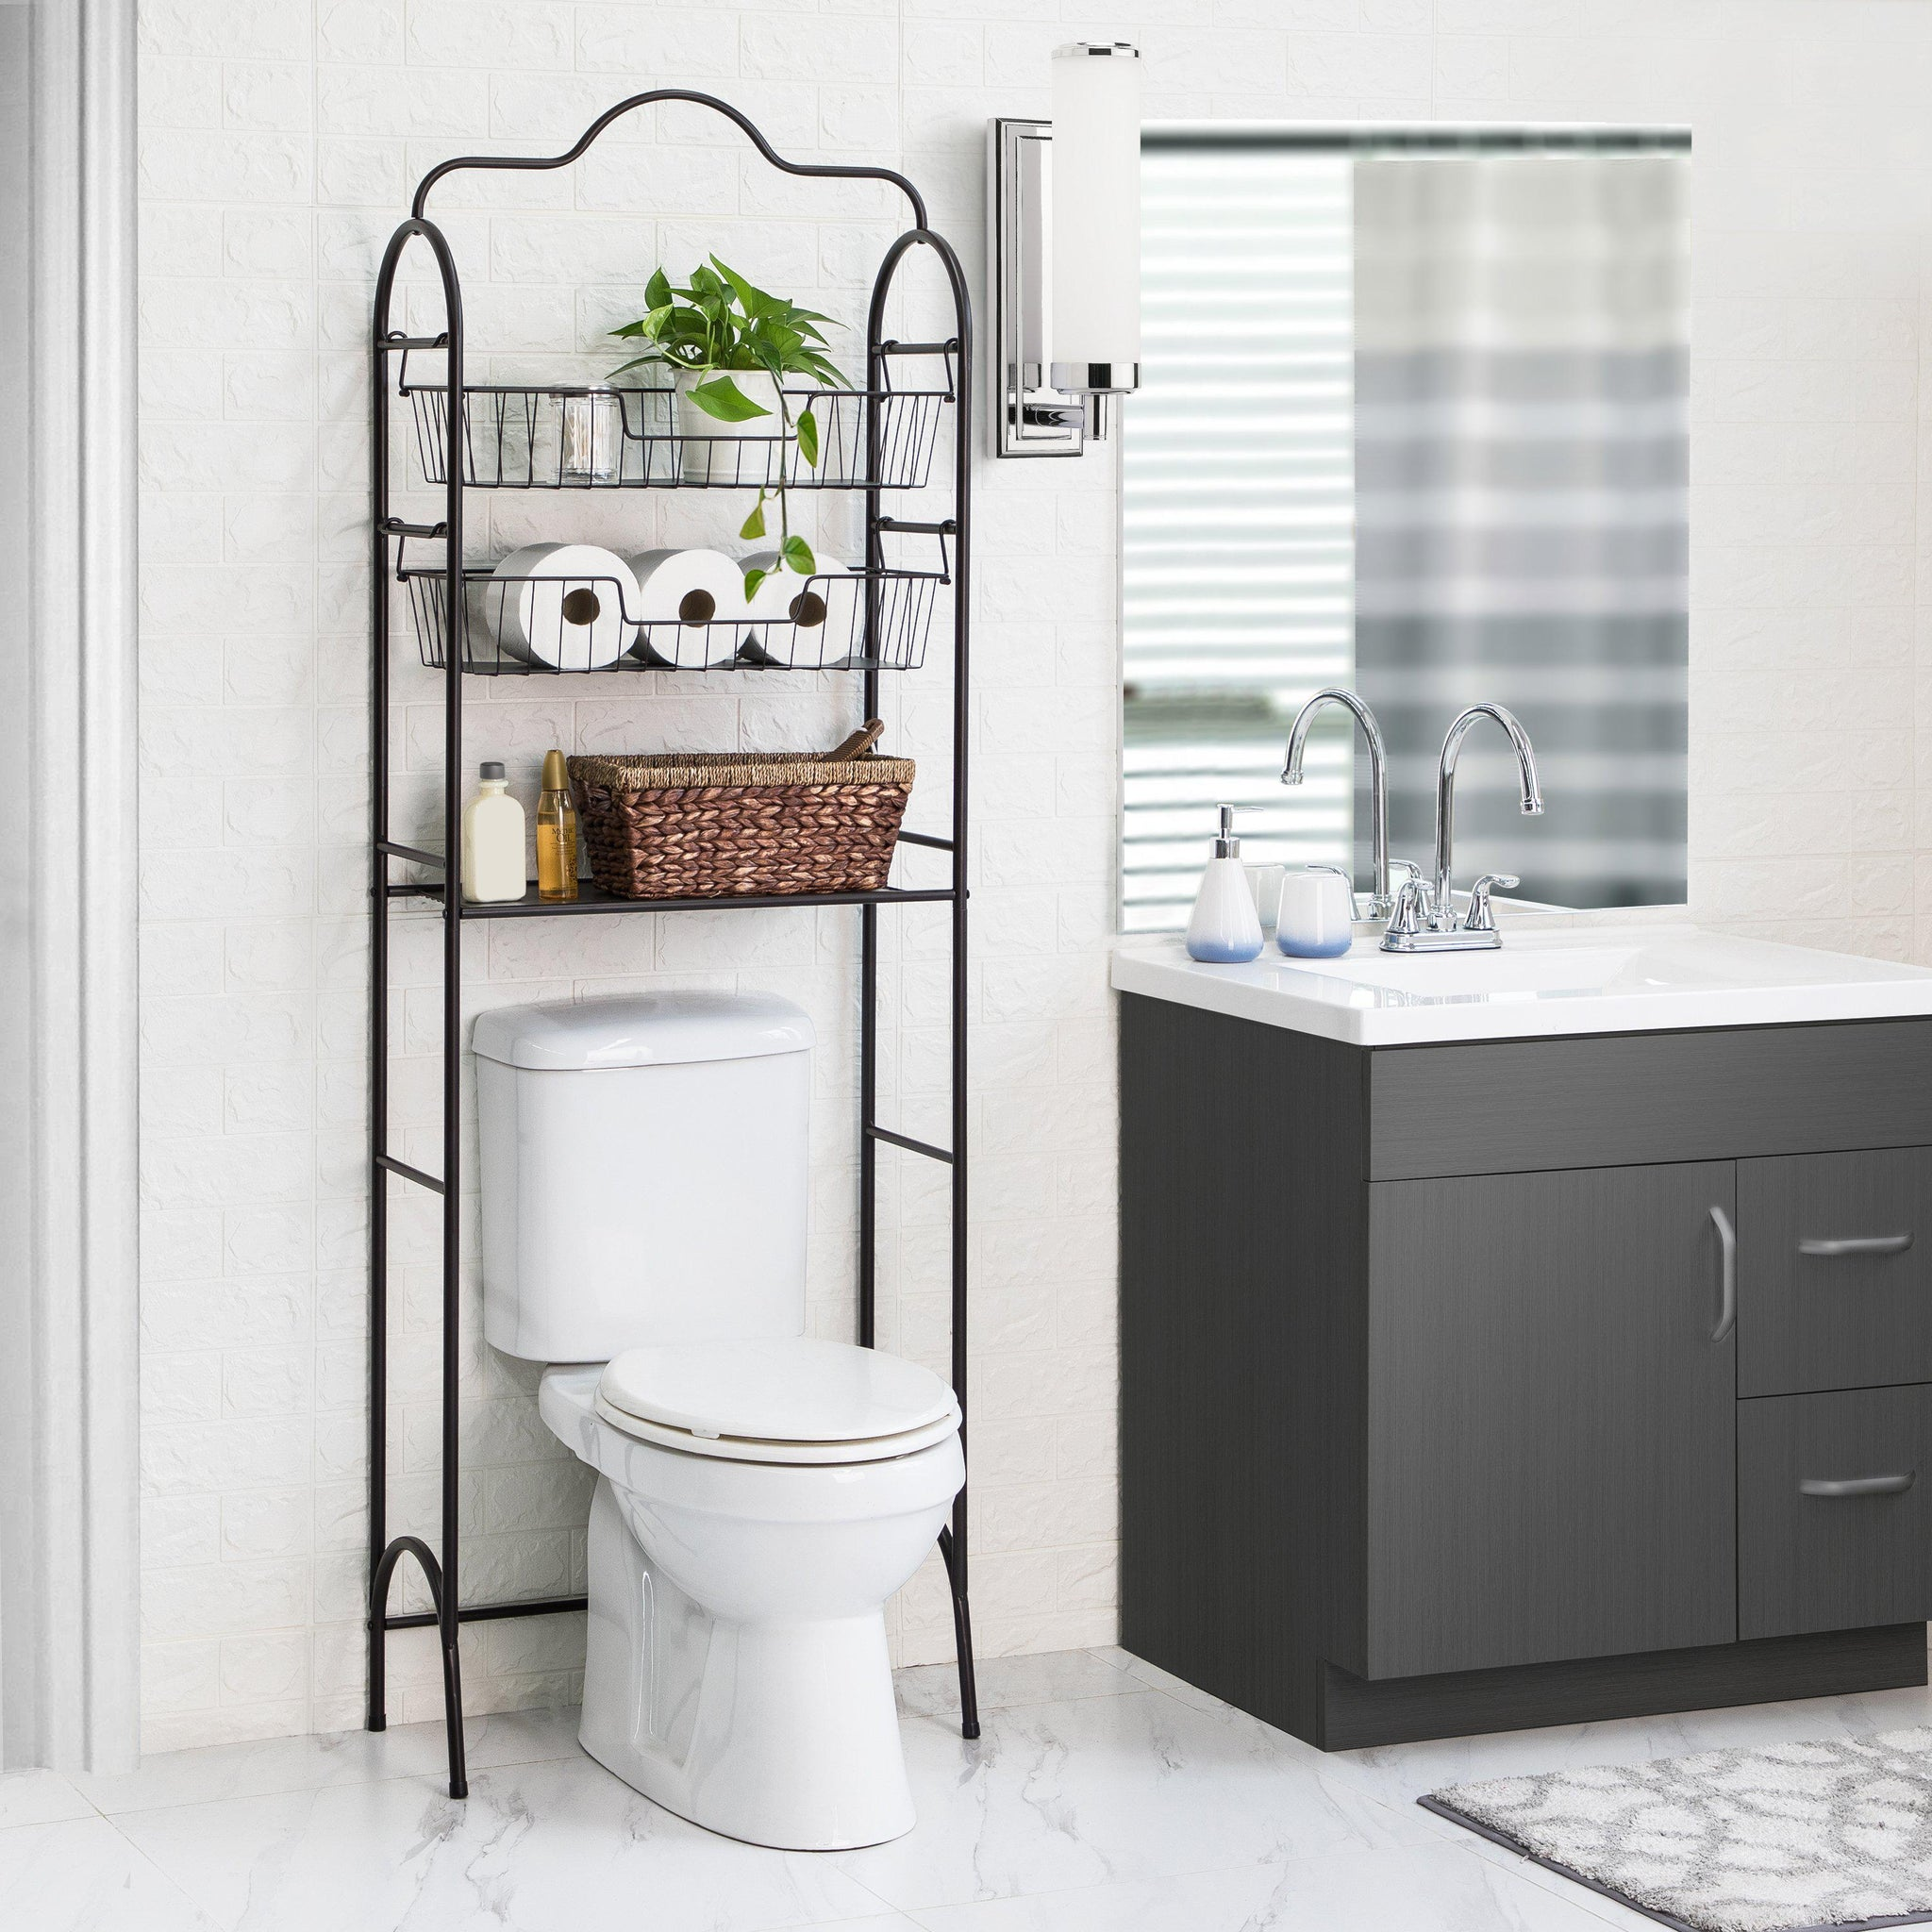 Over The Toilet Bathroom Storage Rack With Basket Shelving Cal7000u Home Zone Living